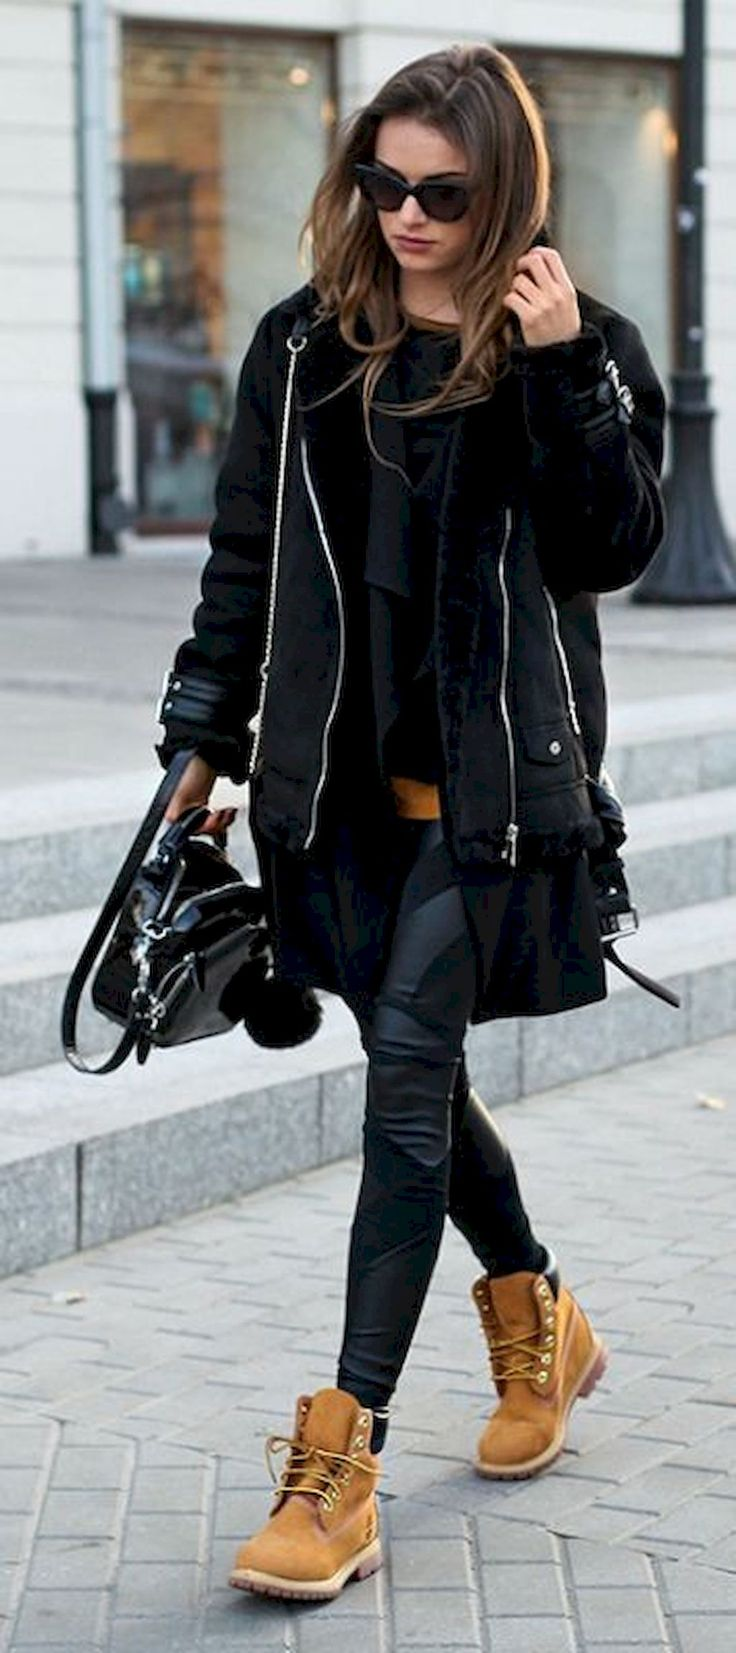 Gorgeous 51 Cute Outfits For Winter With Leather Legging  #Cute #Leather #Legging #Outfits #Winter